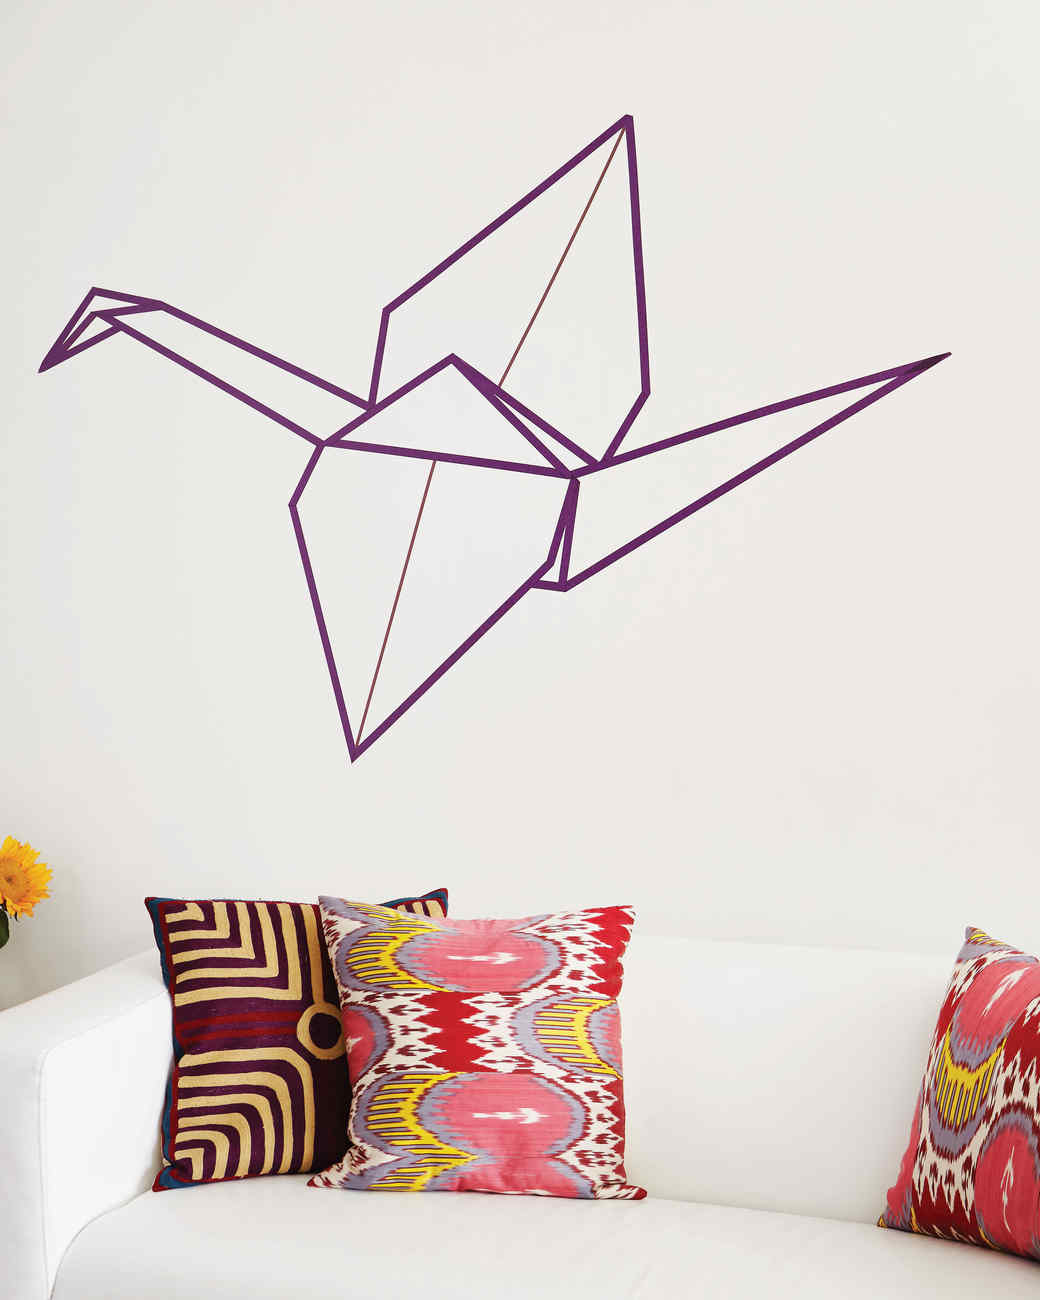 Washi Tape Origami Crane Wall Art